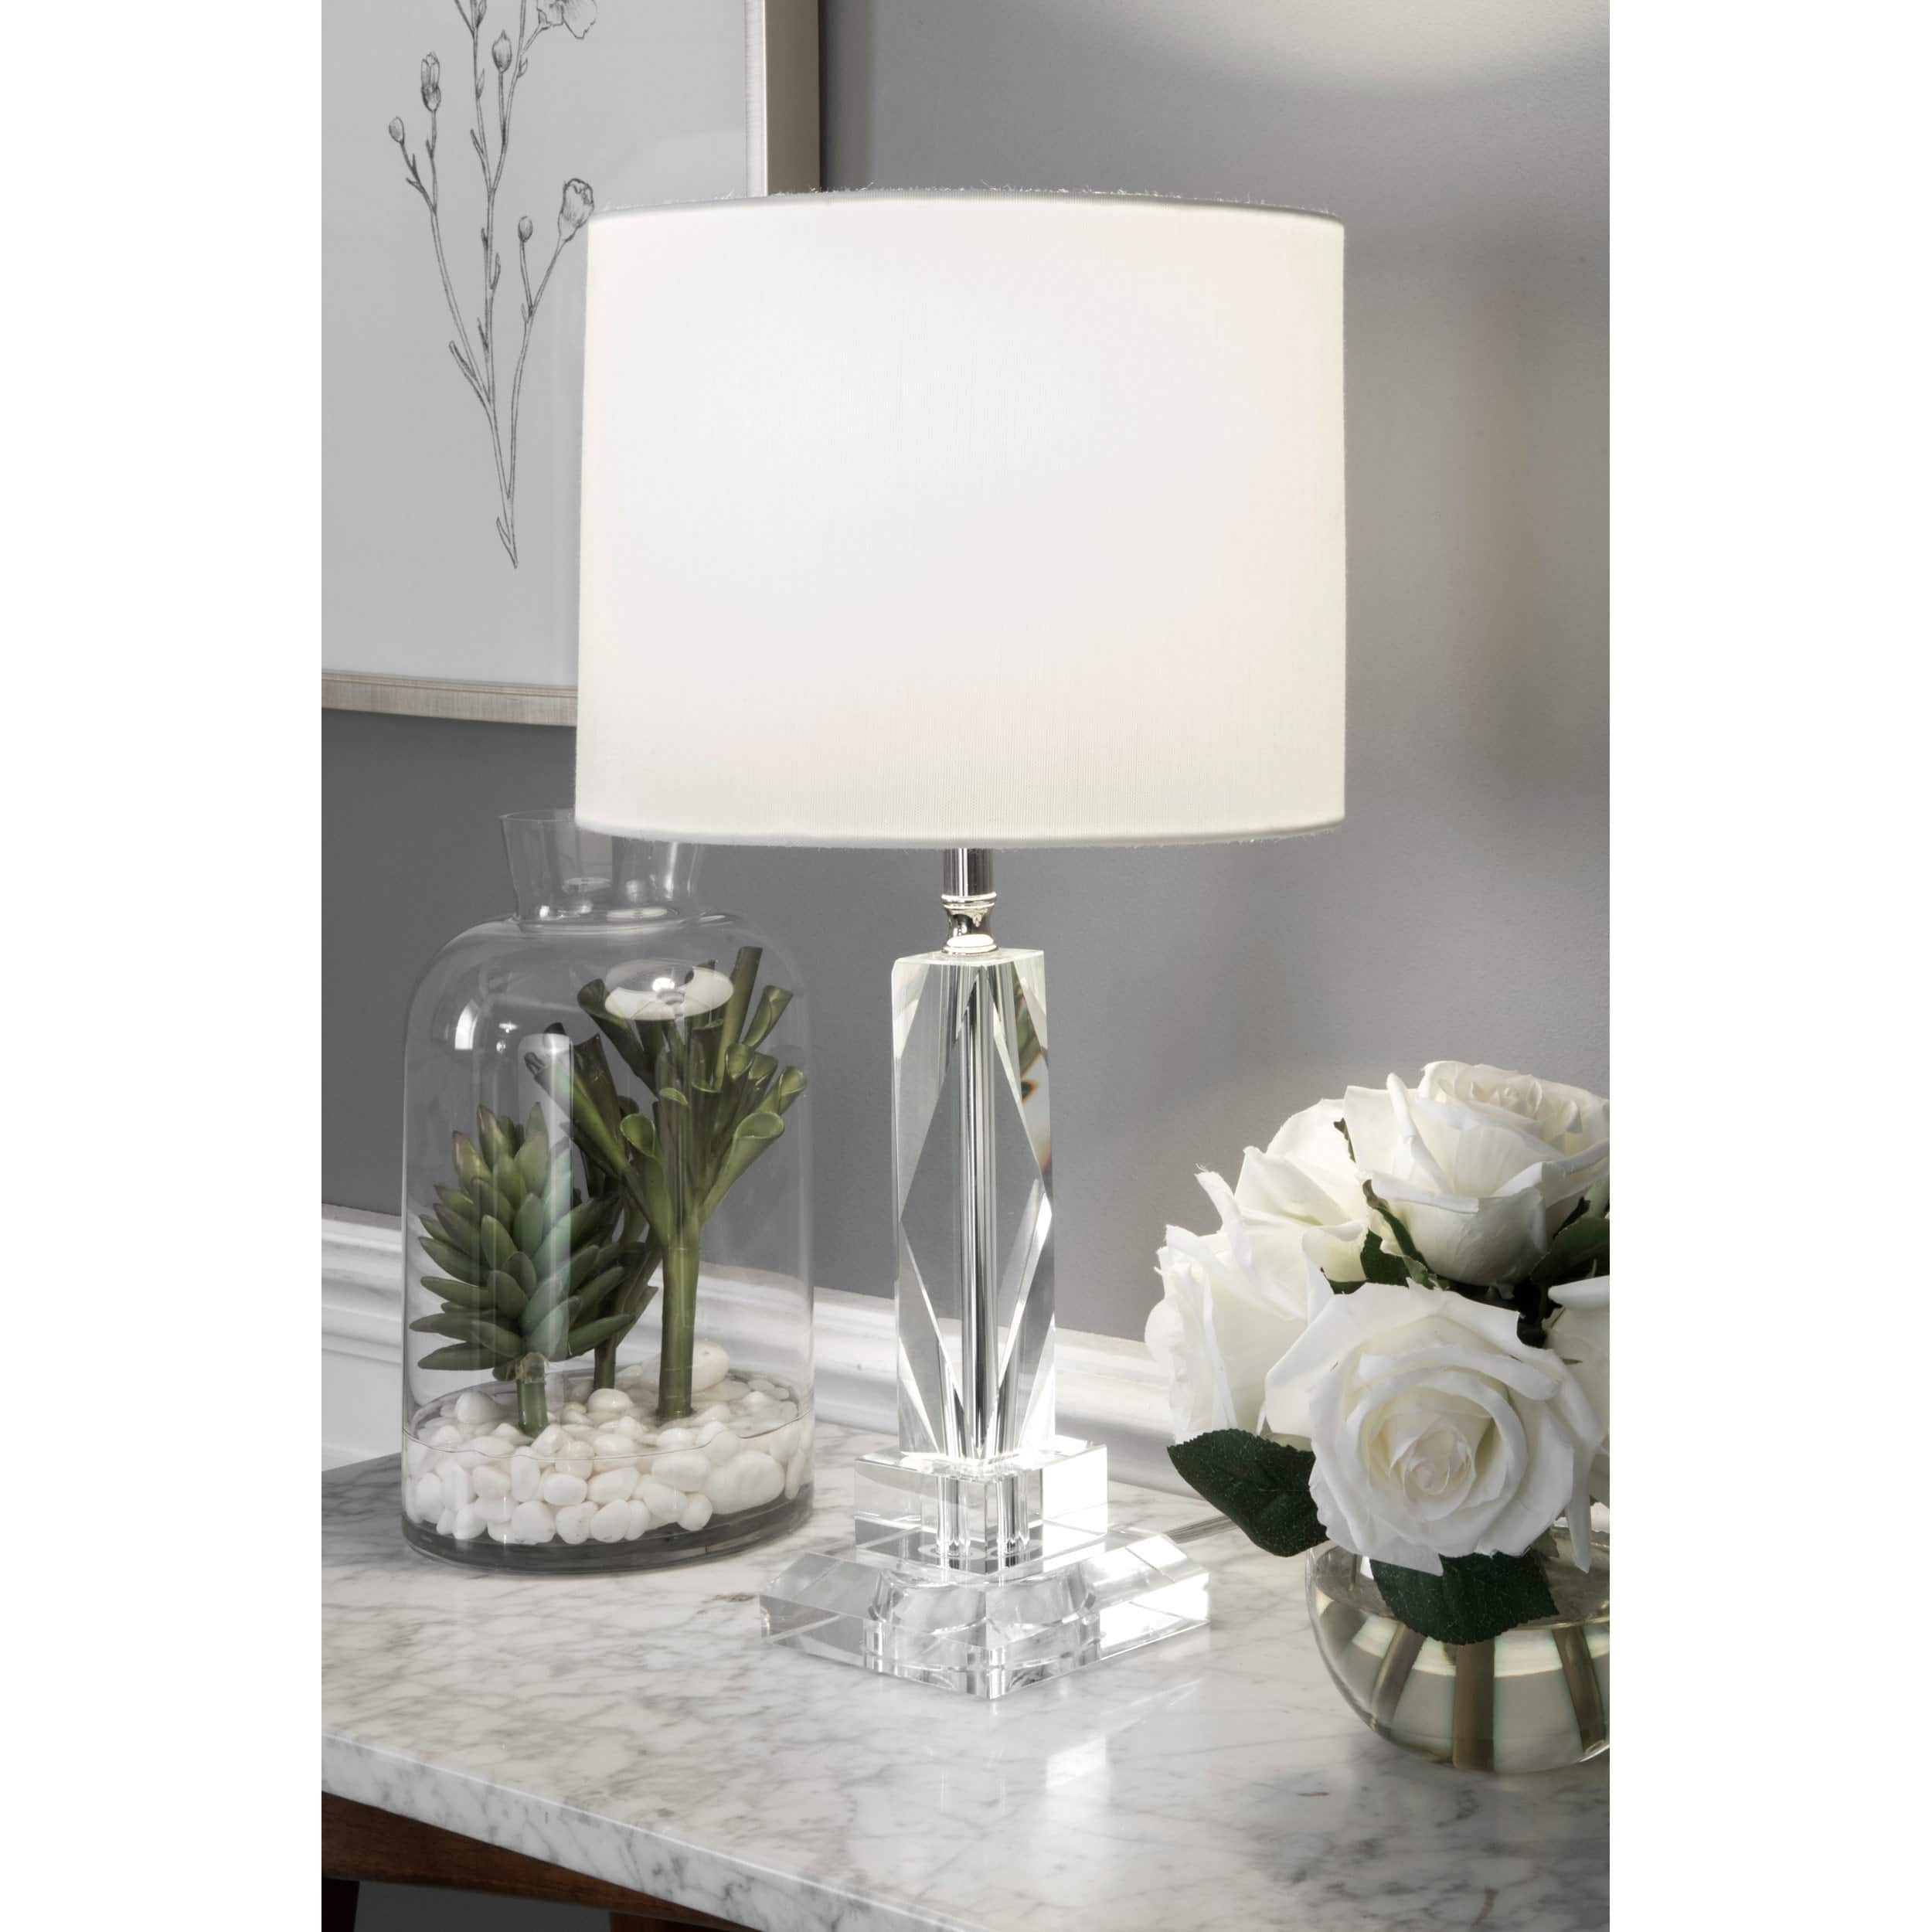 Inspiration about Desk Table Reading Lamp White Light Book Bedroom Living Room Home Within Living Room Table Reading Lamps (#2 of 15)